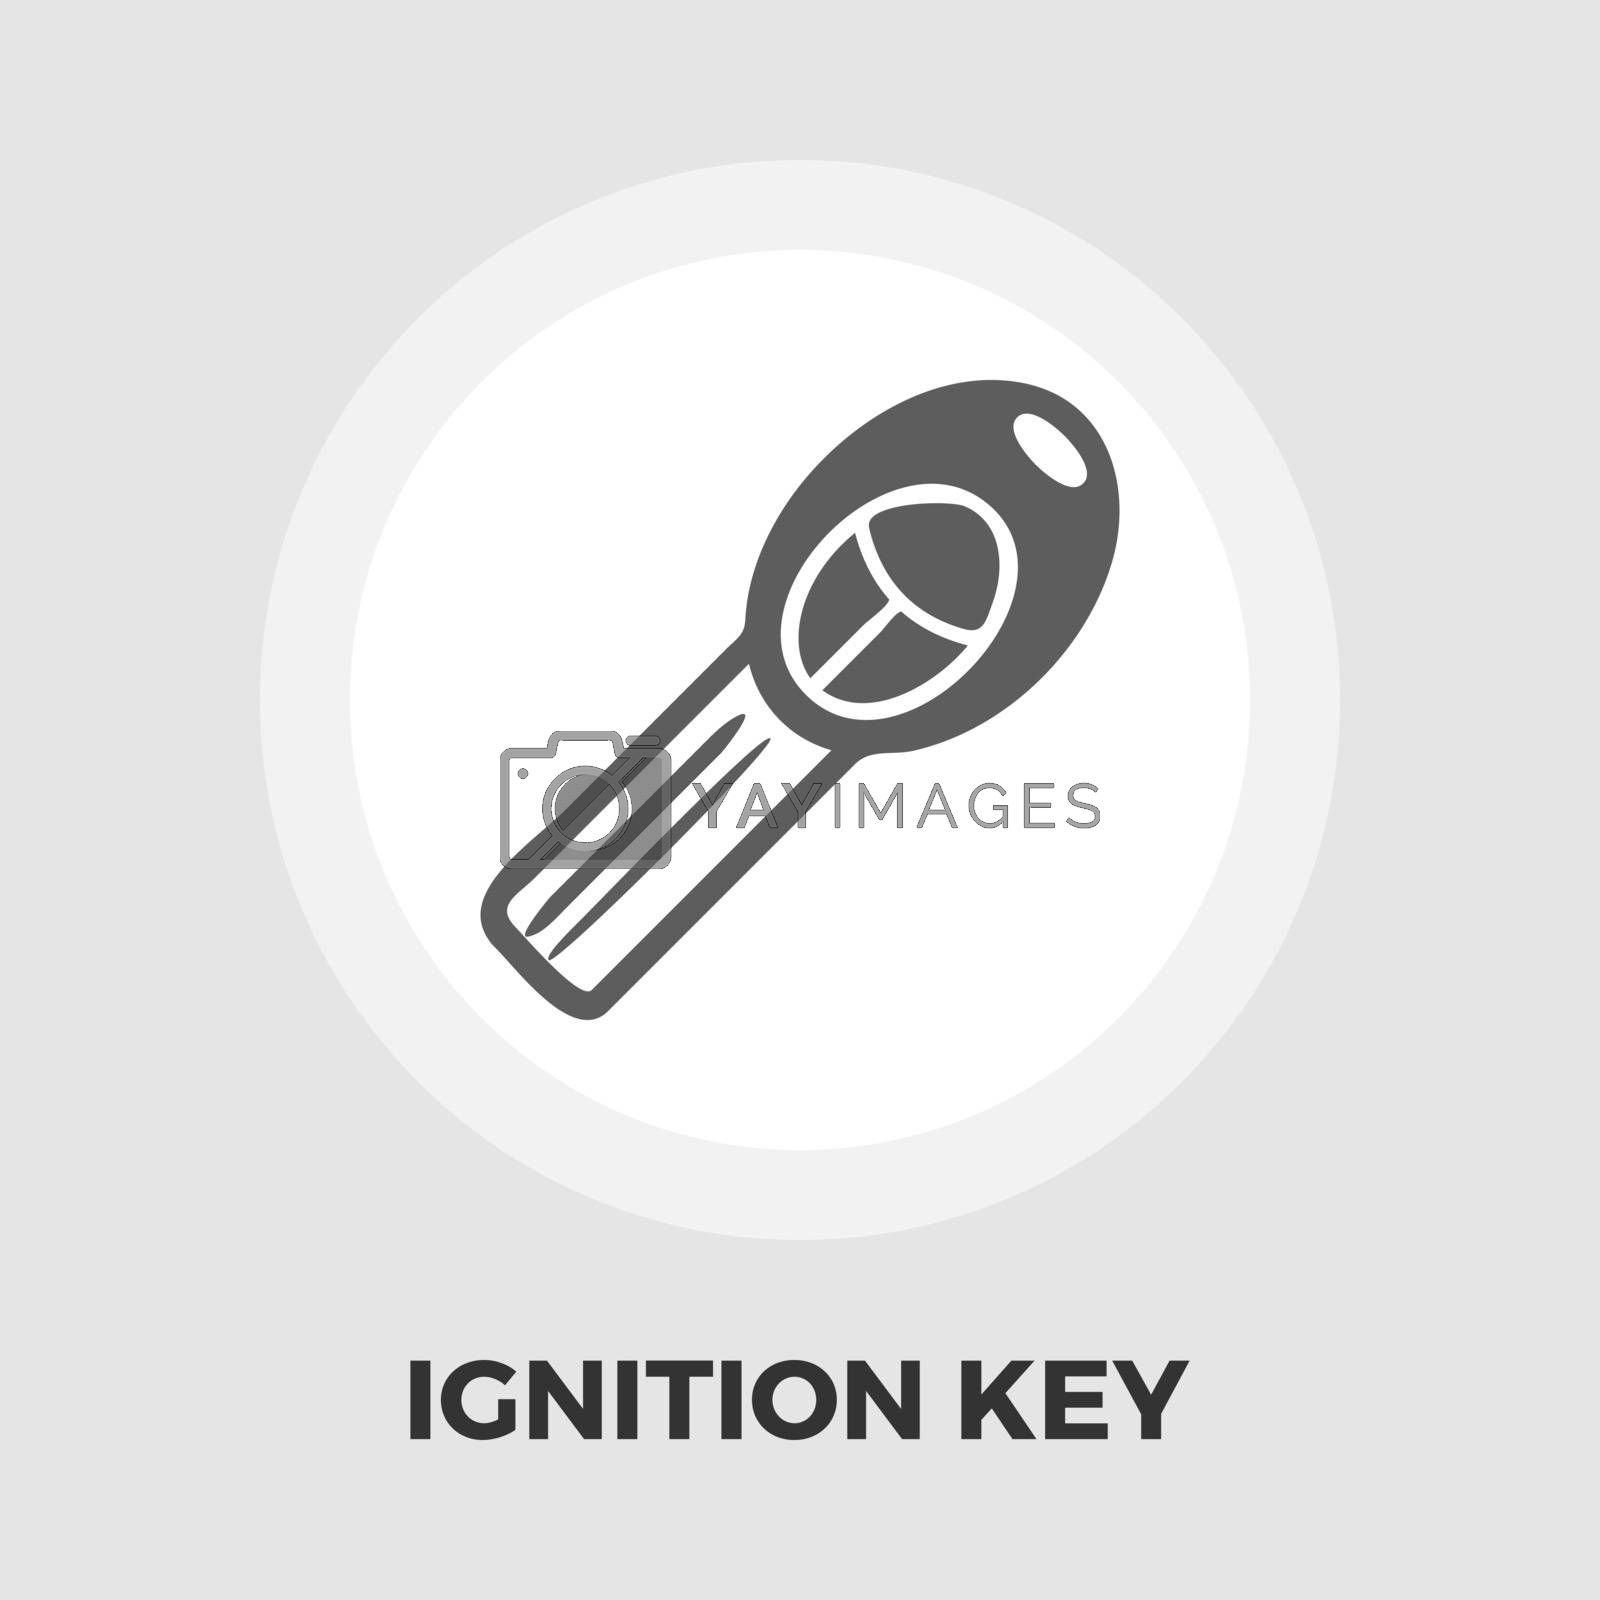 Ignition key icon vector. Flat icon isolated on the white background. Editable EPS file. Vector illustration.